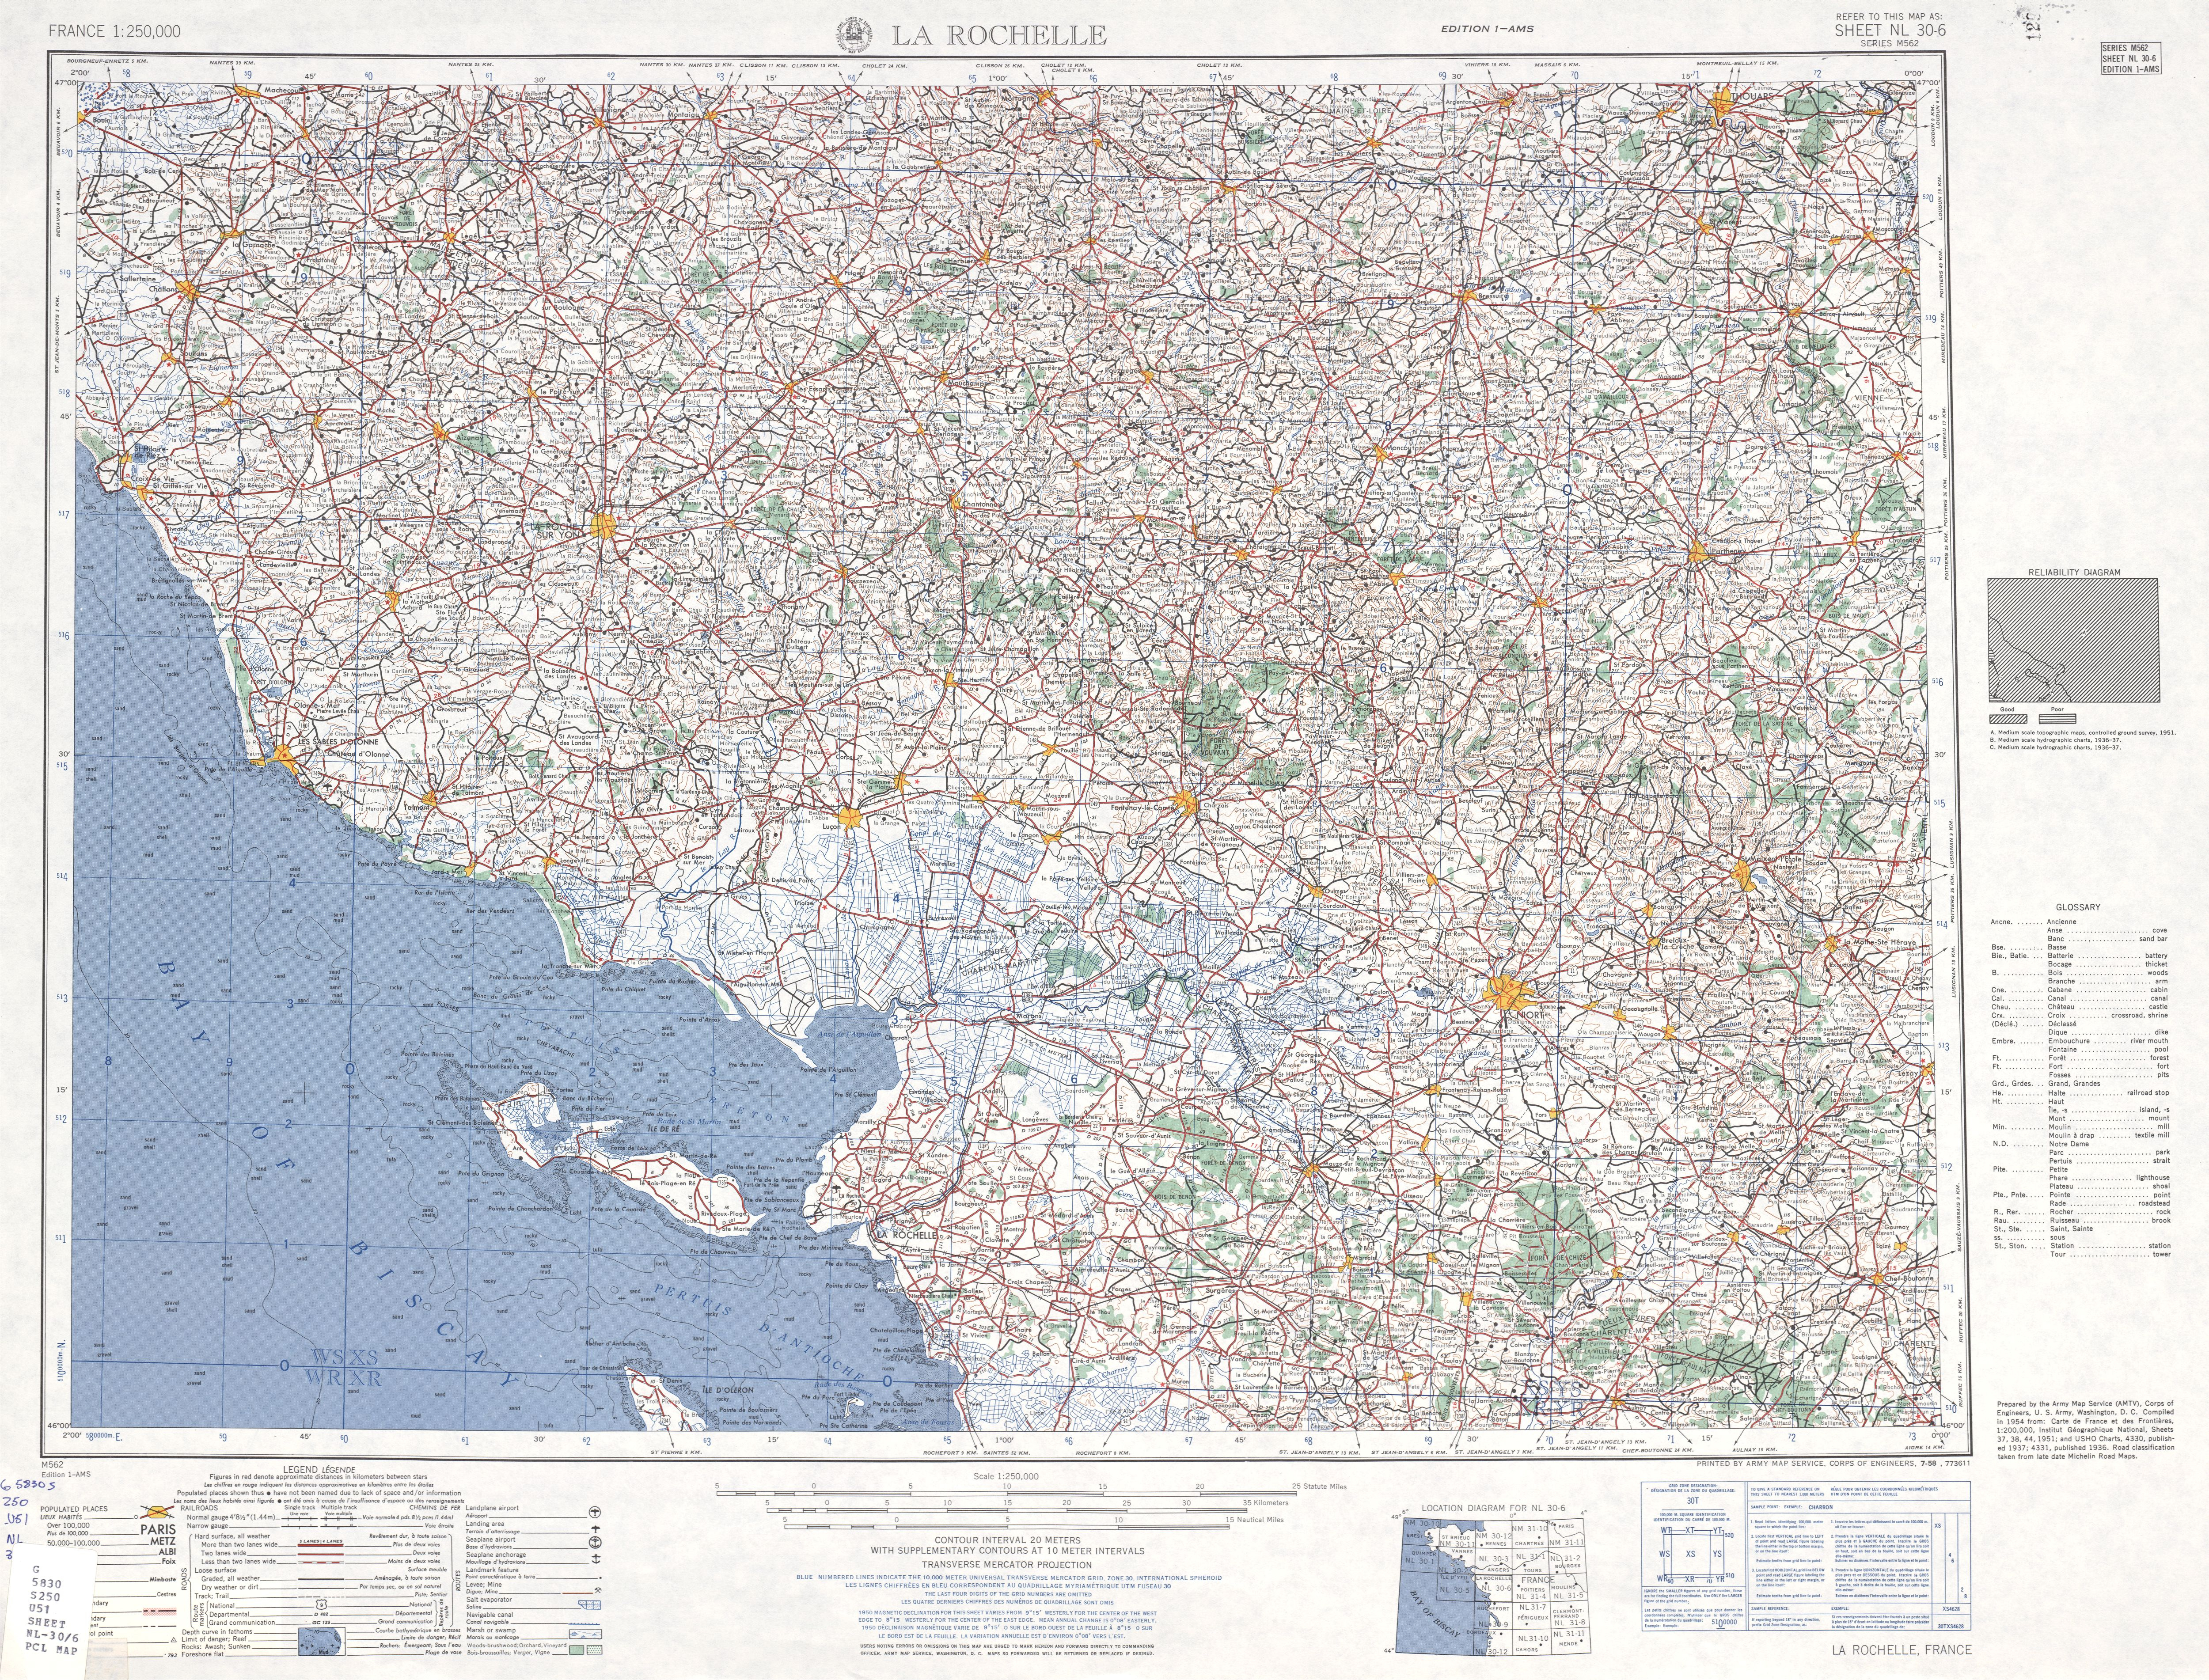 France Ams Topographic Maps - Perry-Castañeda Map Collection - Ut - Printable Topo Maps Online